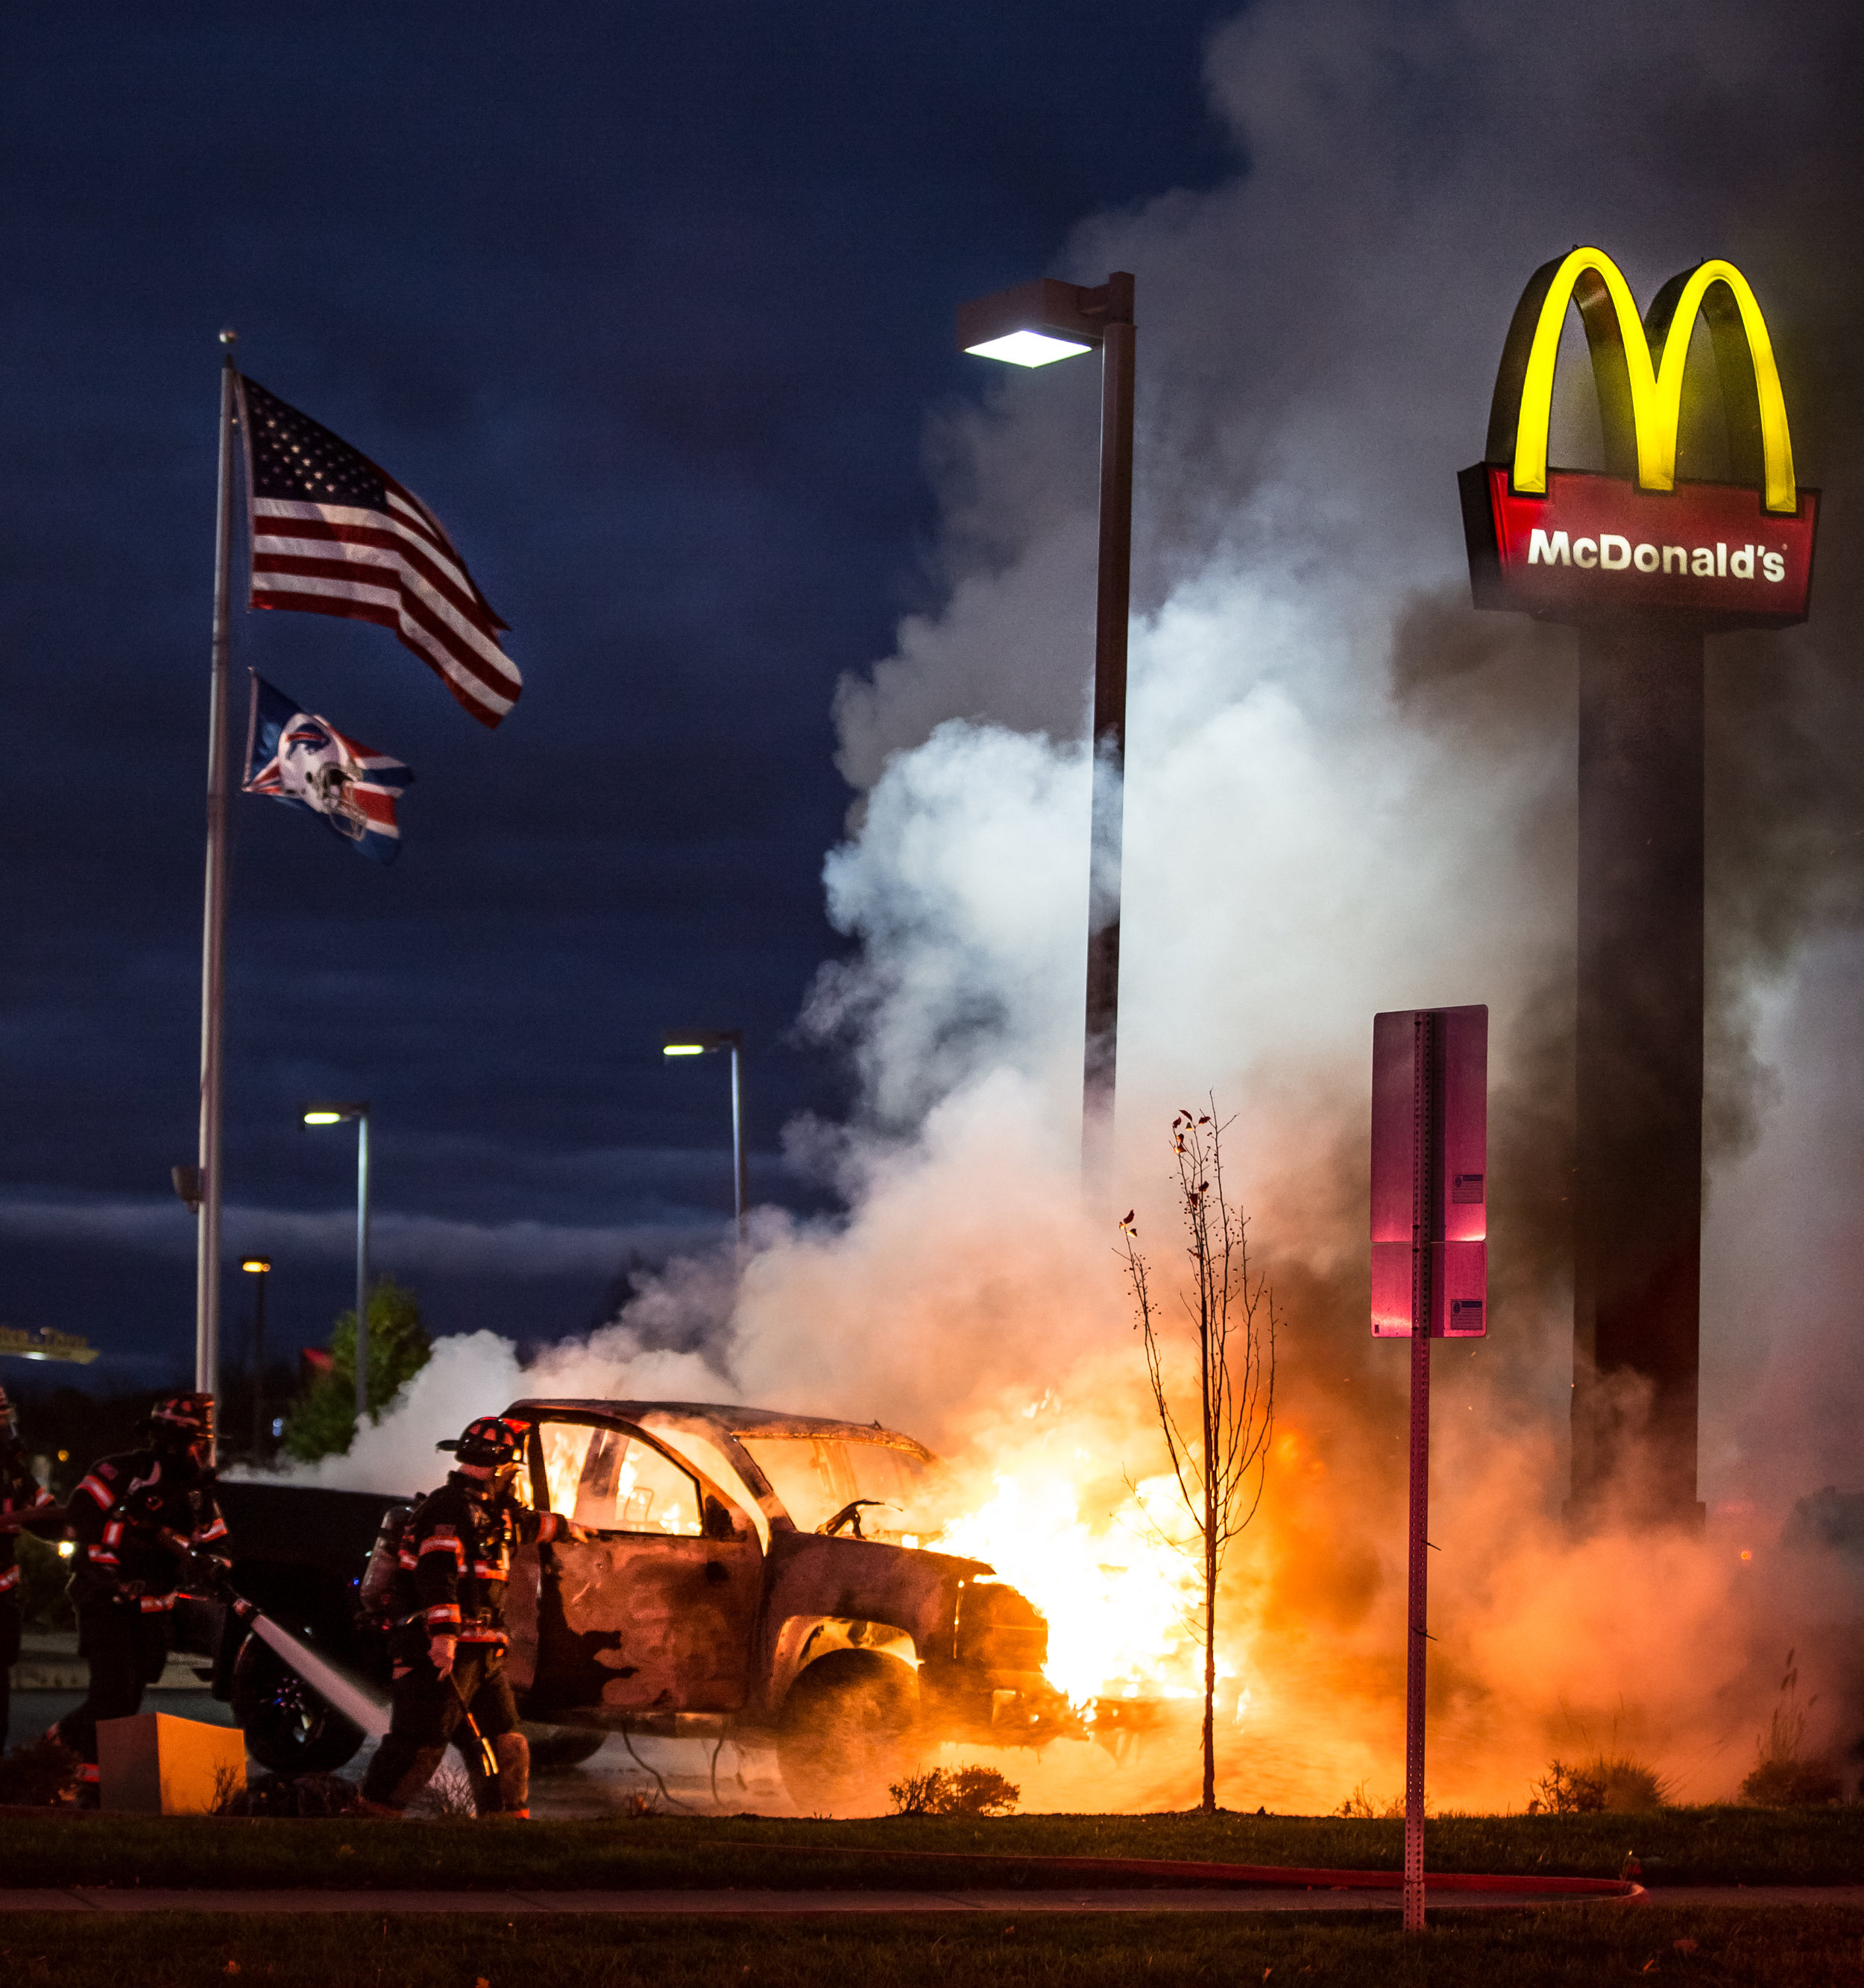 A pick-up truck spontaneously caught fire in a McDonald's parking lot on the corner of Sweet Home Rd and Sheridan Dr in Amherst, NY around 5:30pm. Emergency authorities responded within several minutes and extinguished the fire shortly after. Nov 11, 2016